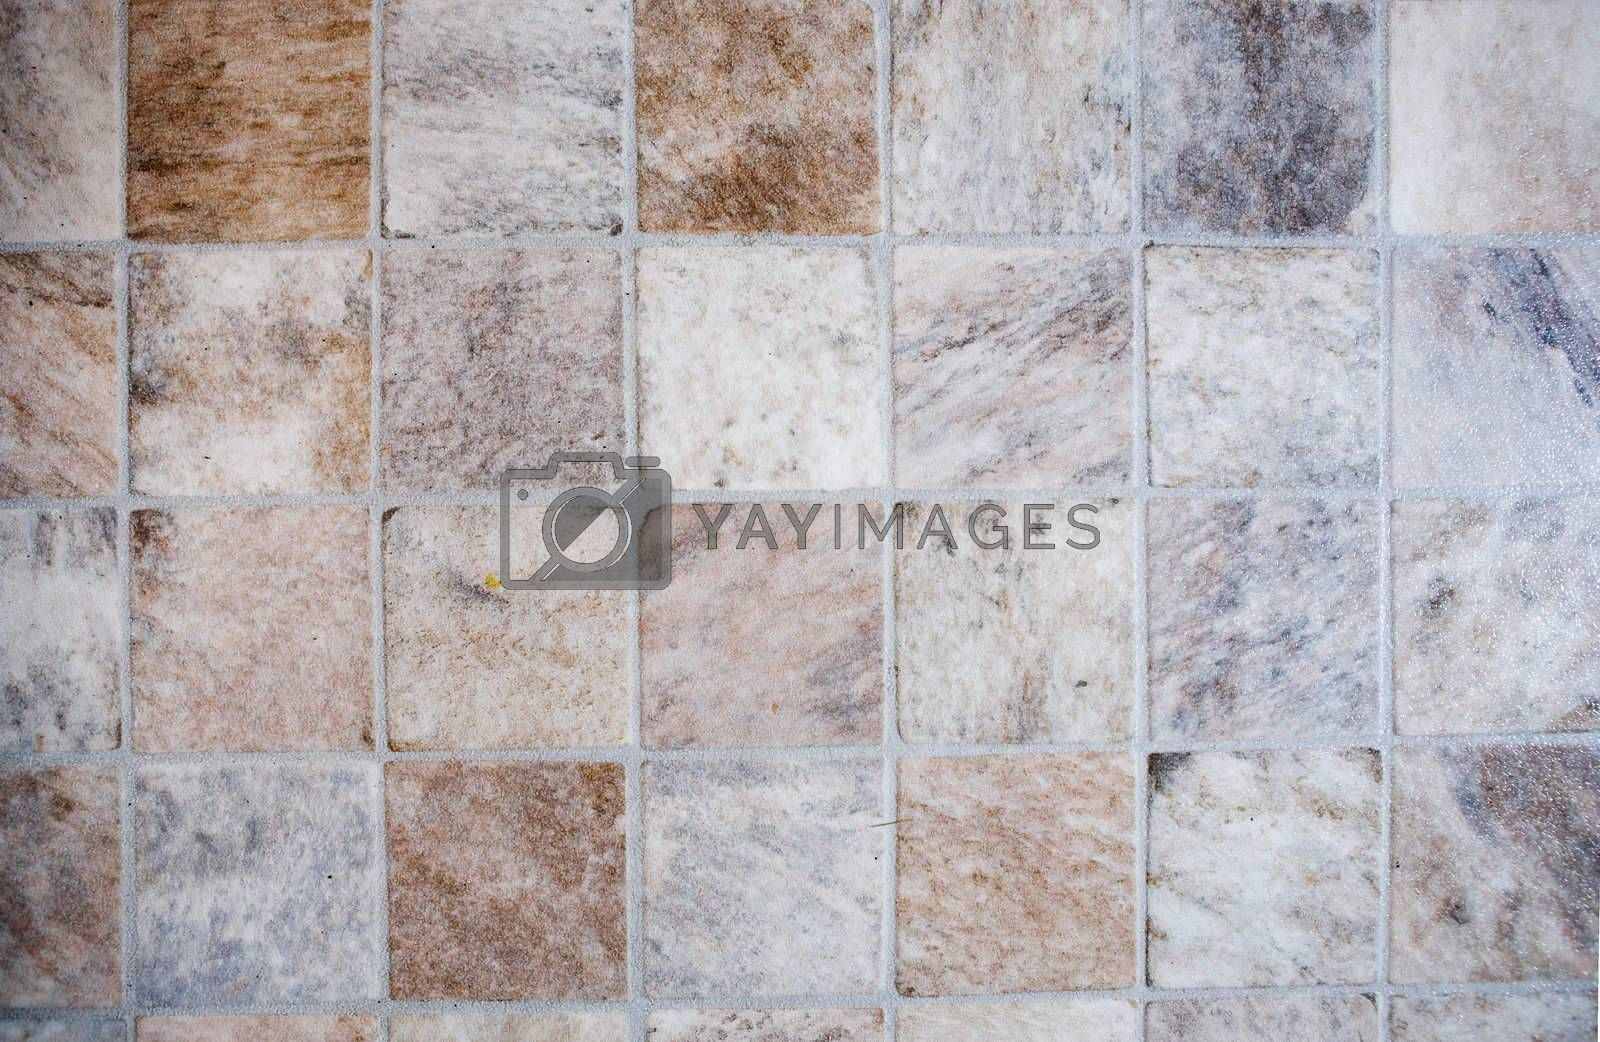 A very detailed image of a linoleum tile background